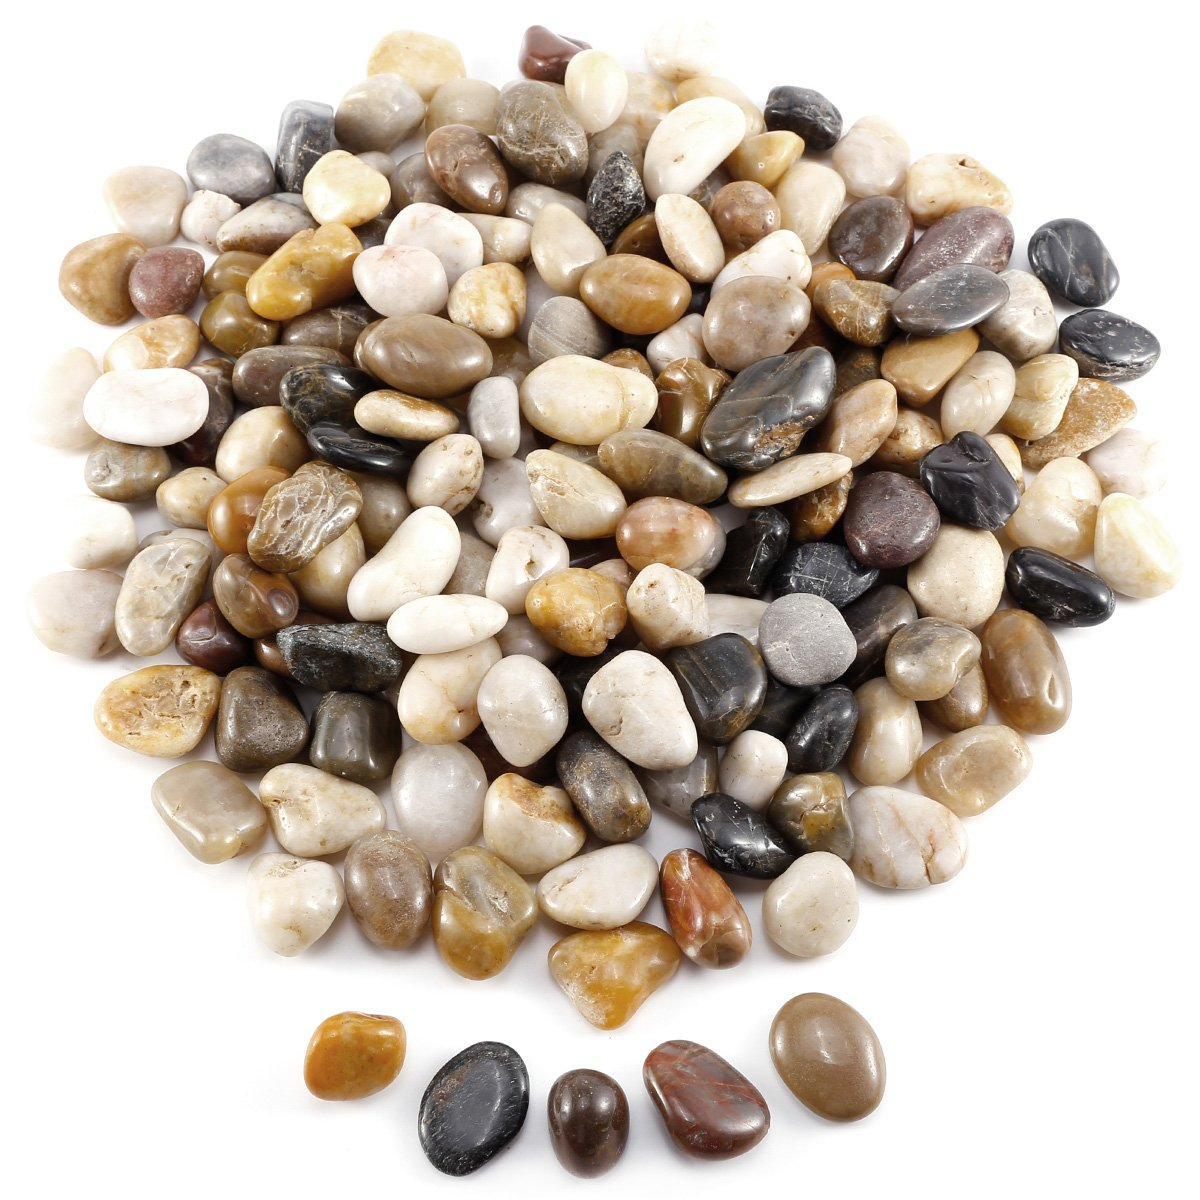 Anladia 5LBS 2.26kg 10-20mm Natural Color River Stones Pebbles, Decorative Stones for Gardens and Craft Projects